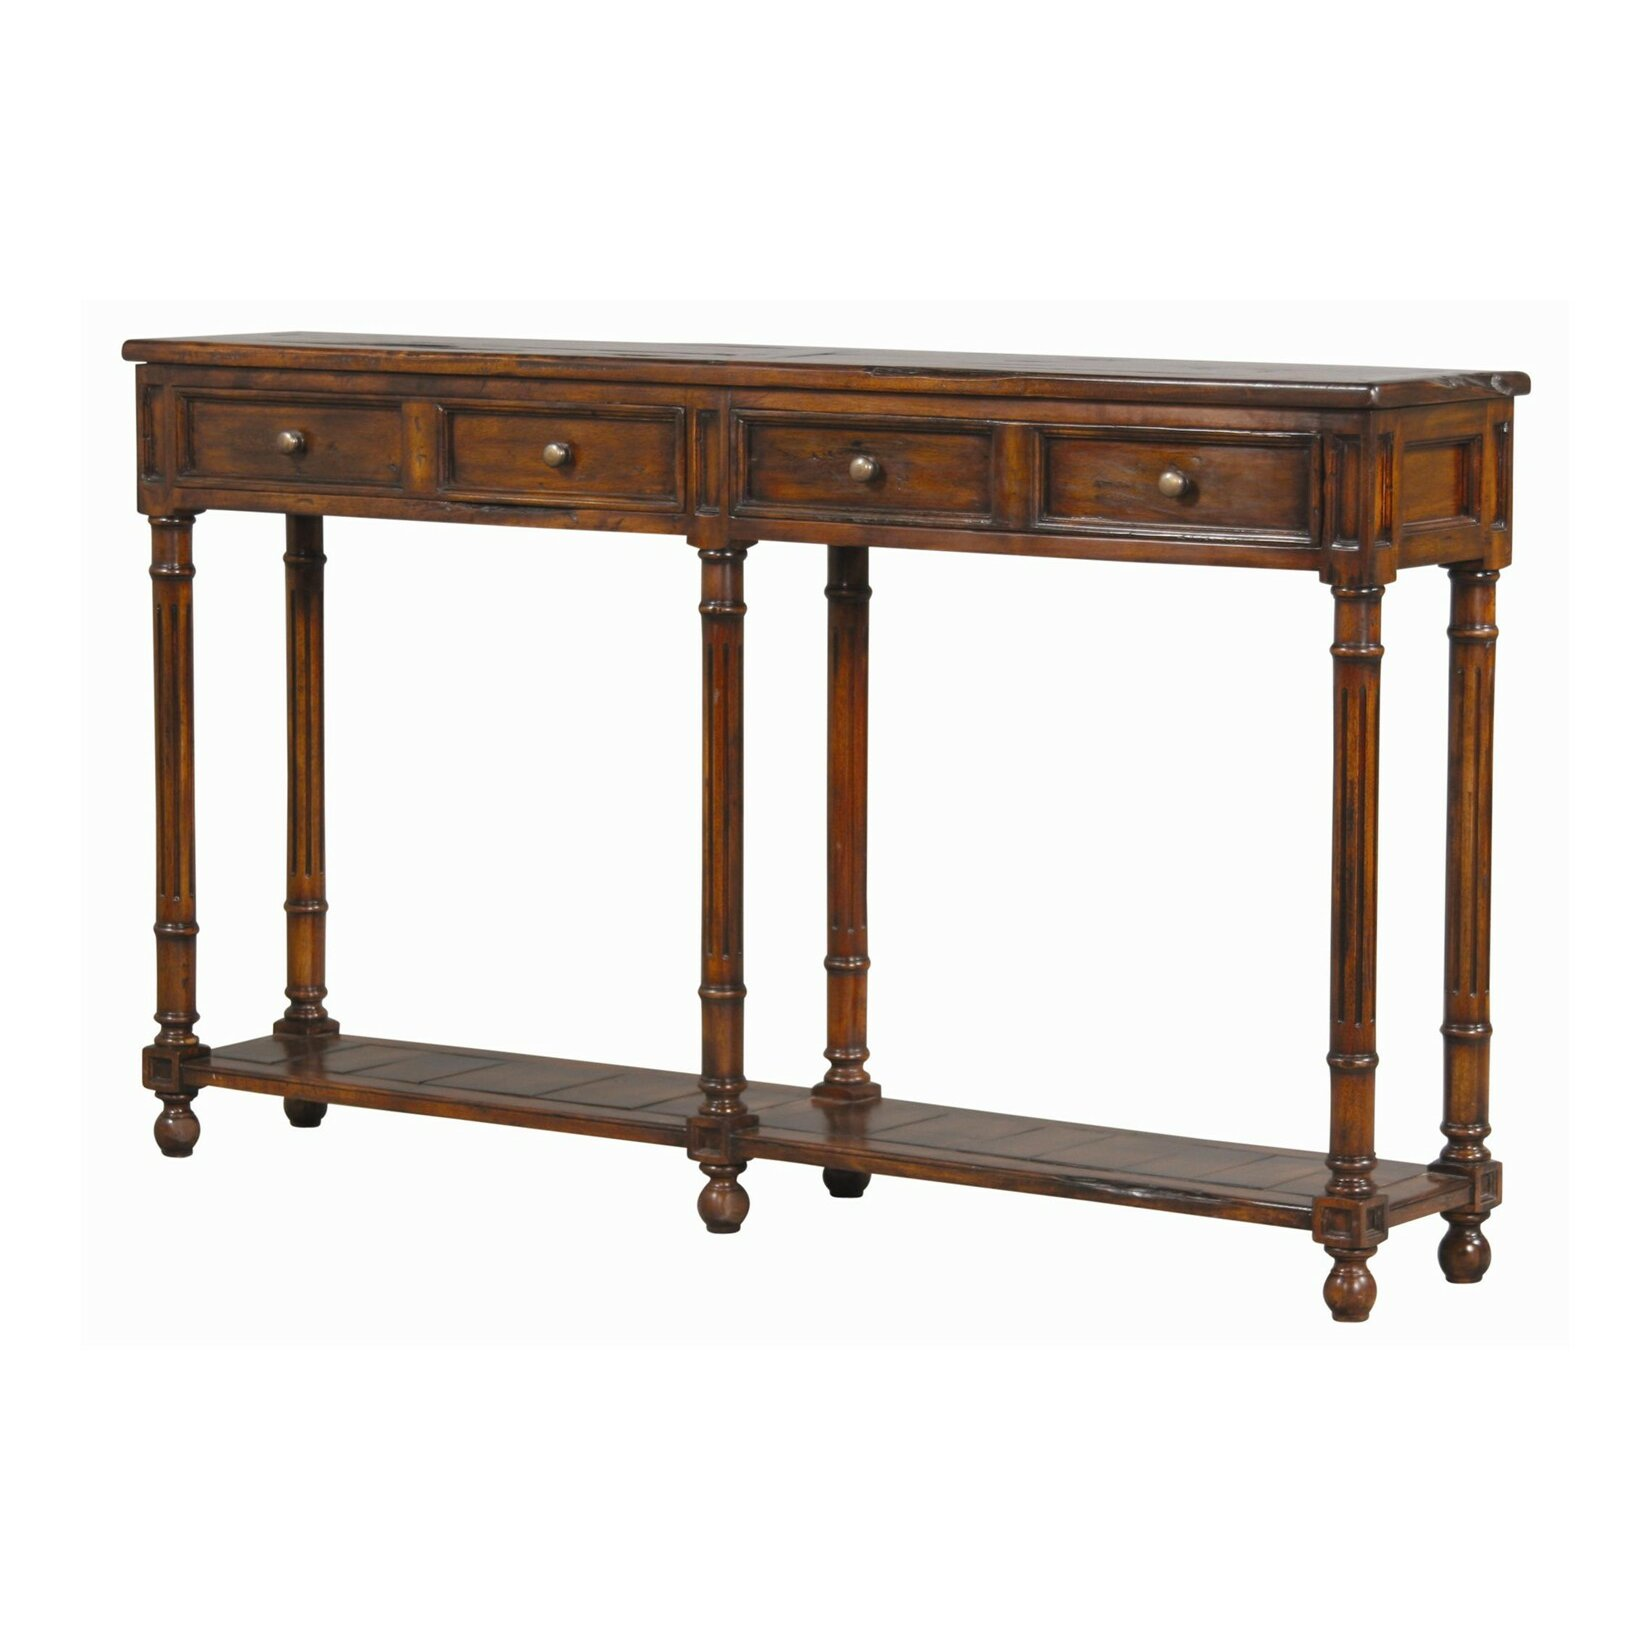 furniture classics ltd narrow console table reviews. Black Bedroom Furniture Sets. Home Design Ideas